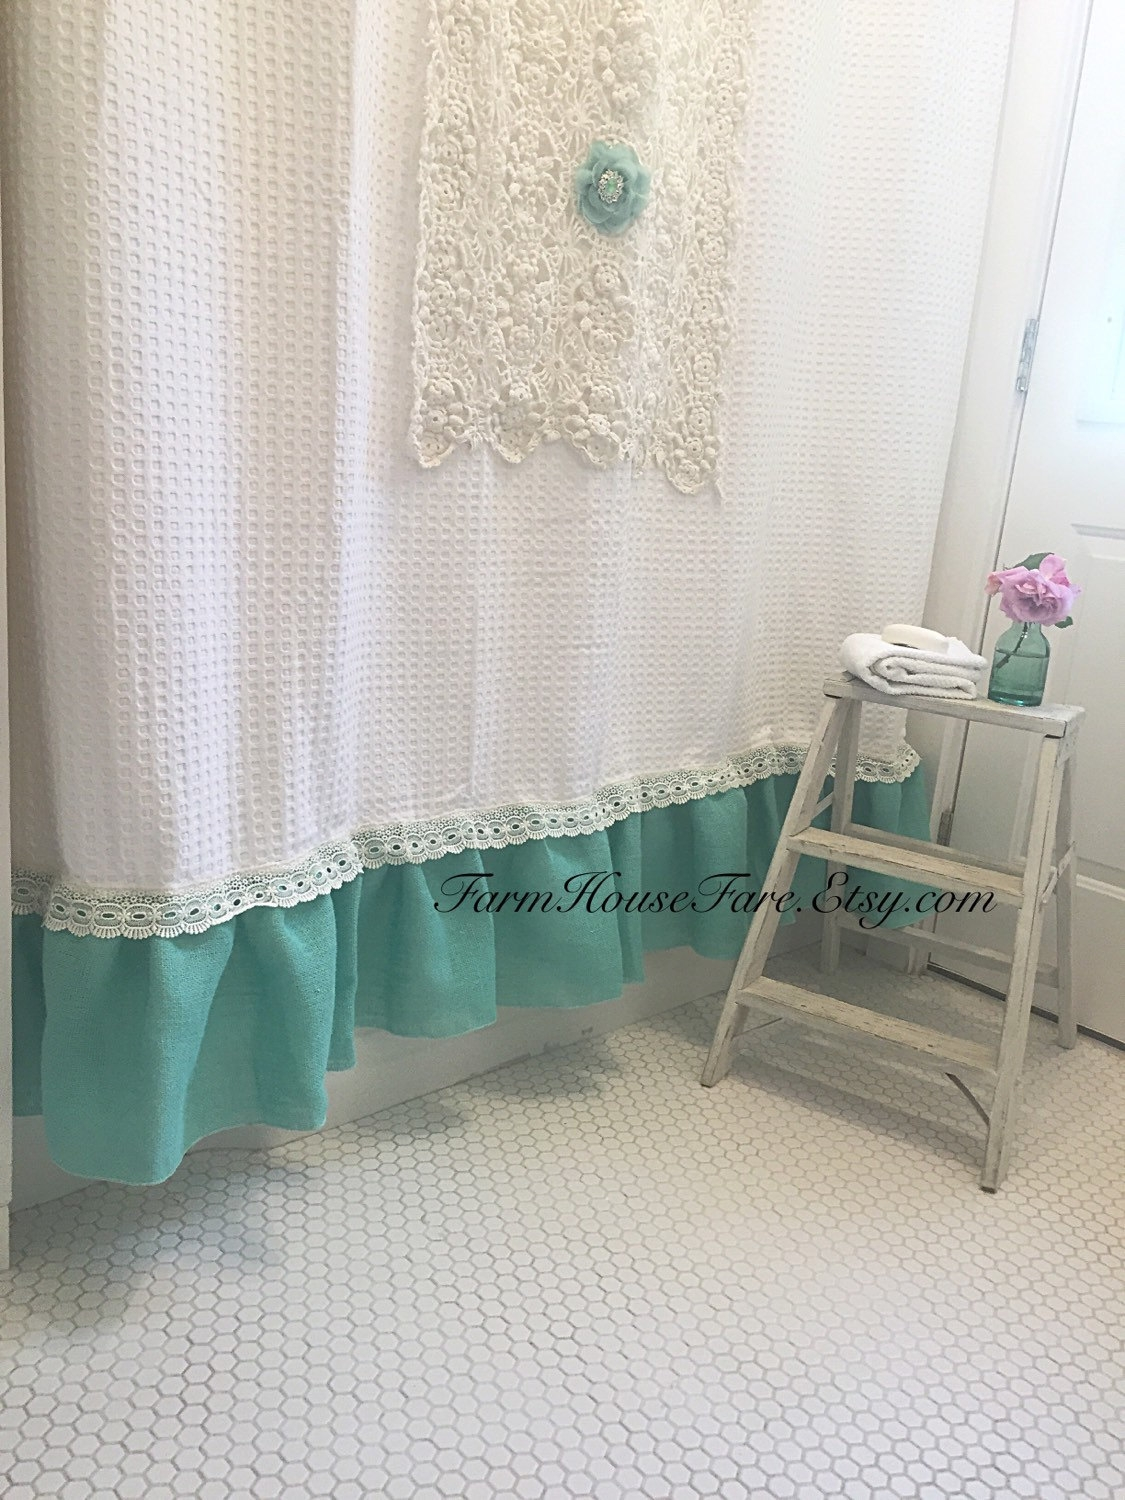 Burlap Curtain Etsy Within Turquoise Burlap Curtains (View 9 of 15)